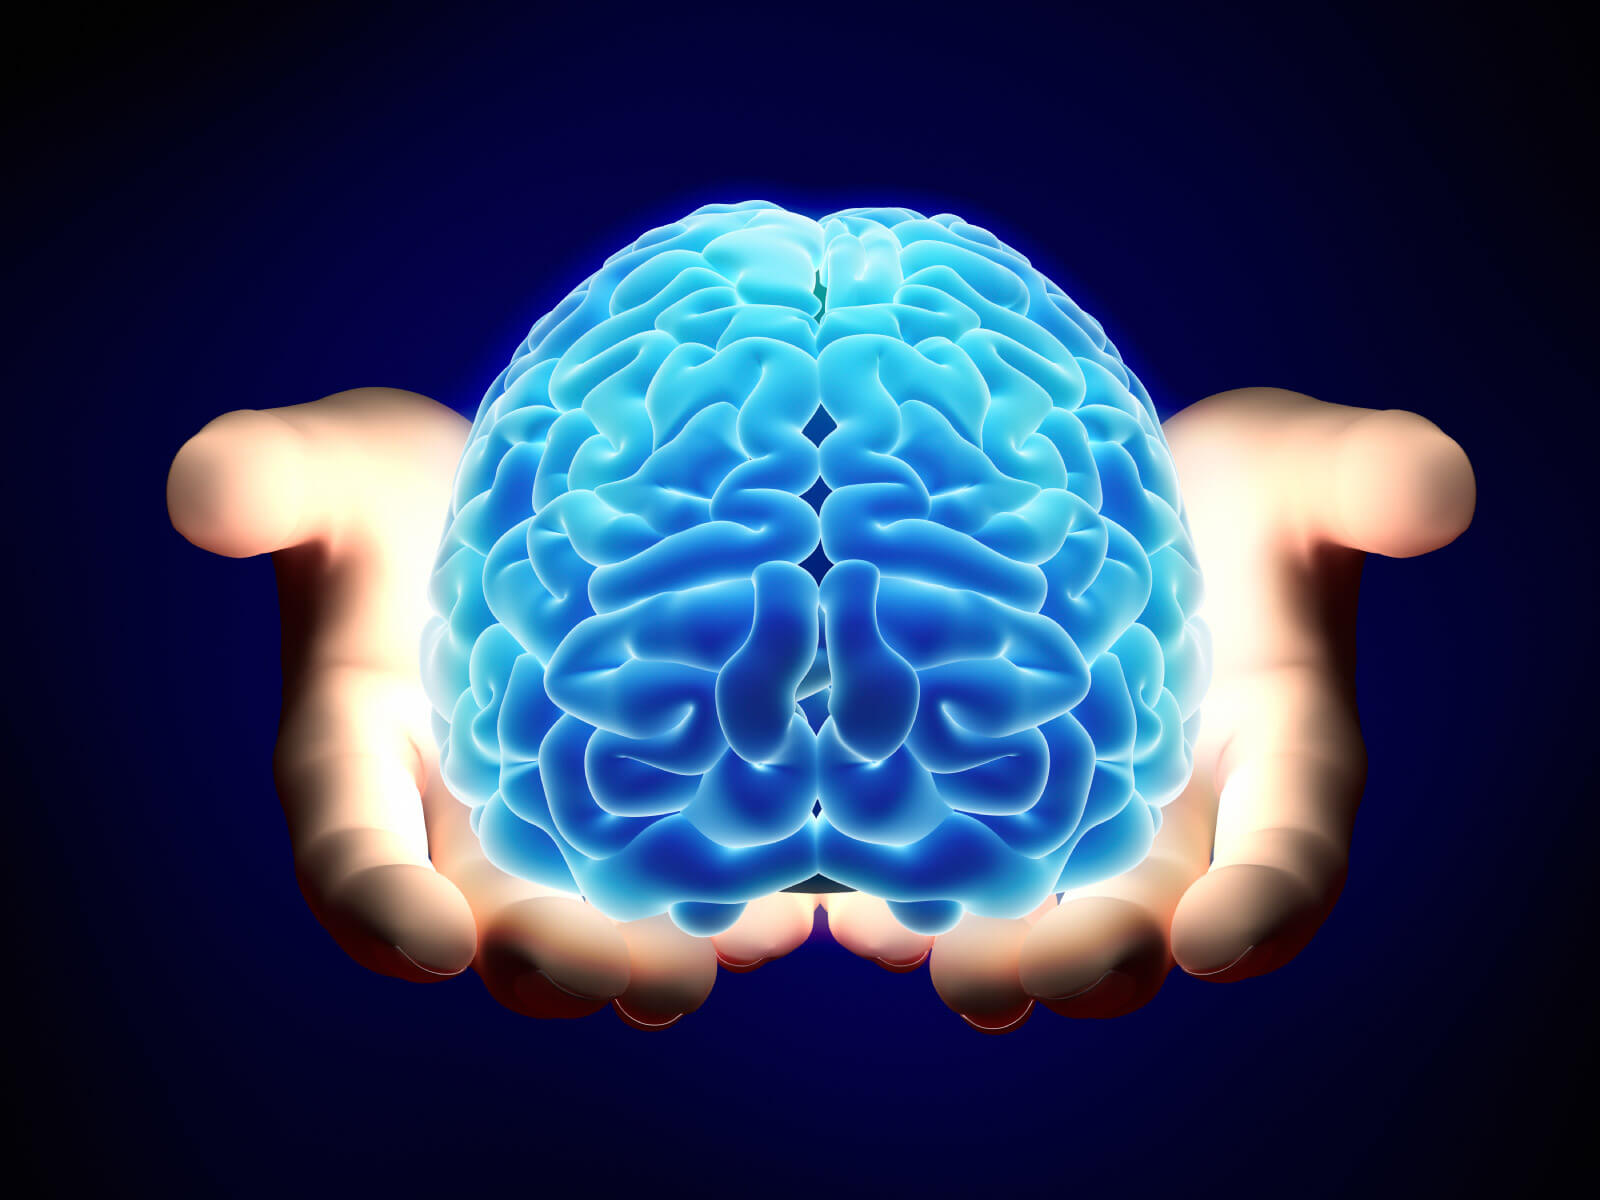 Glowing brain in hands